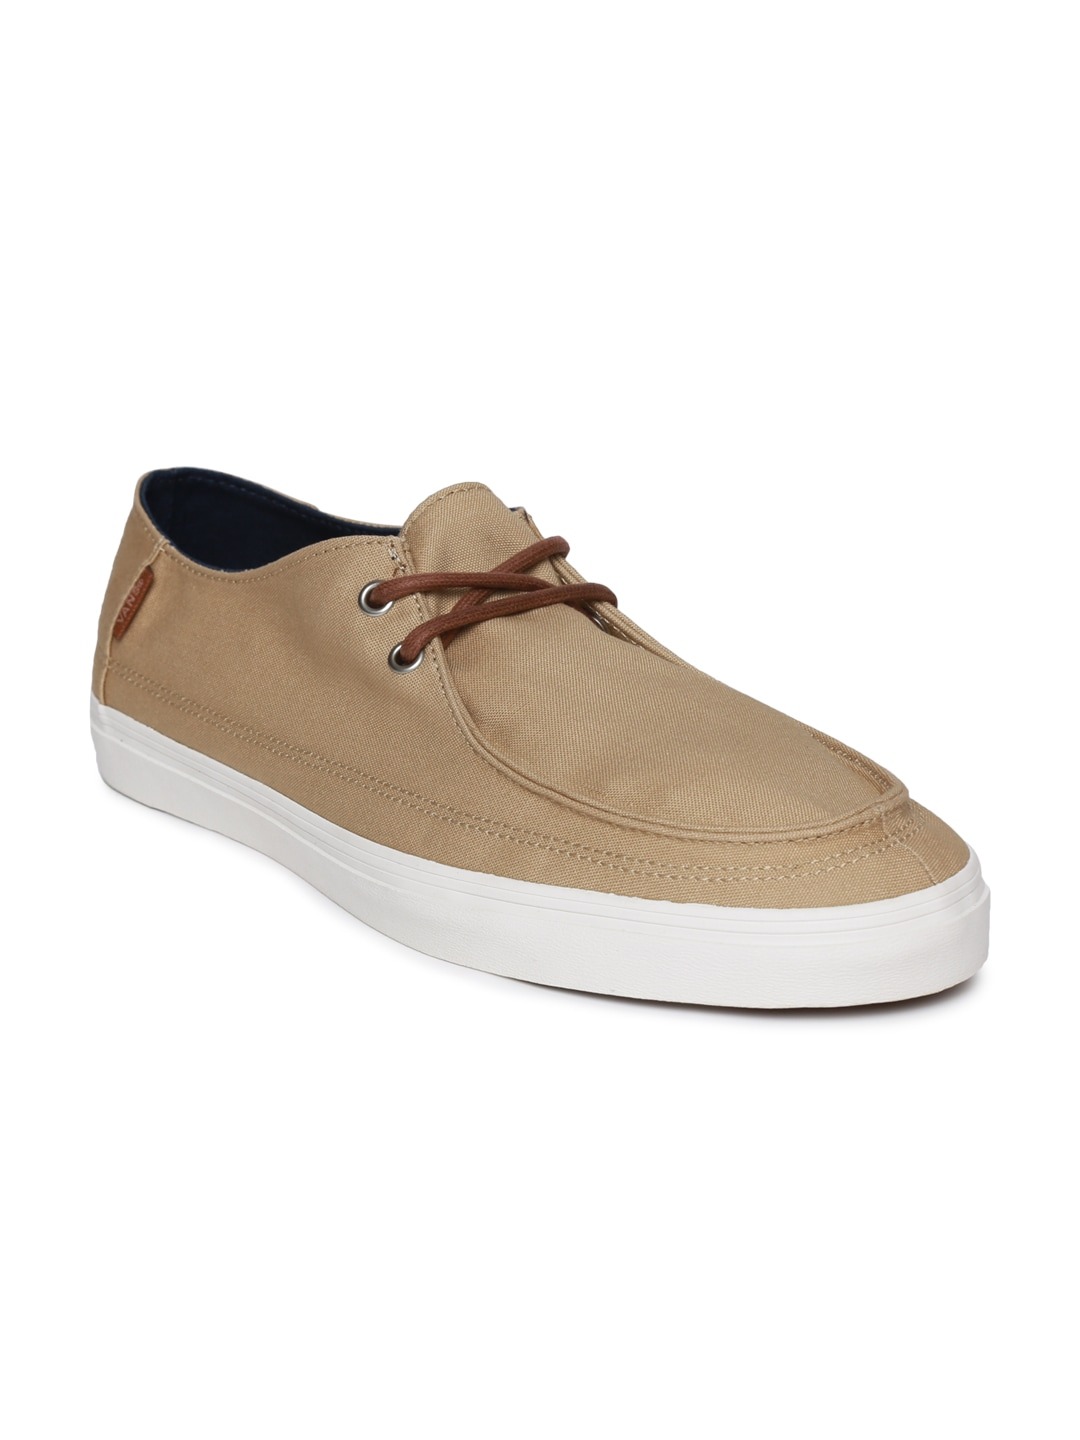 d1d54f47cc Vans Casual Shoes - Buy Vans Casual Shoes Online in India